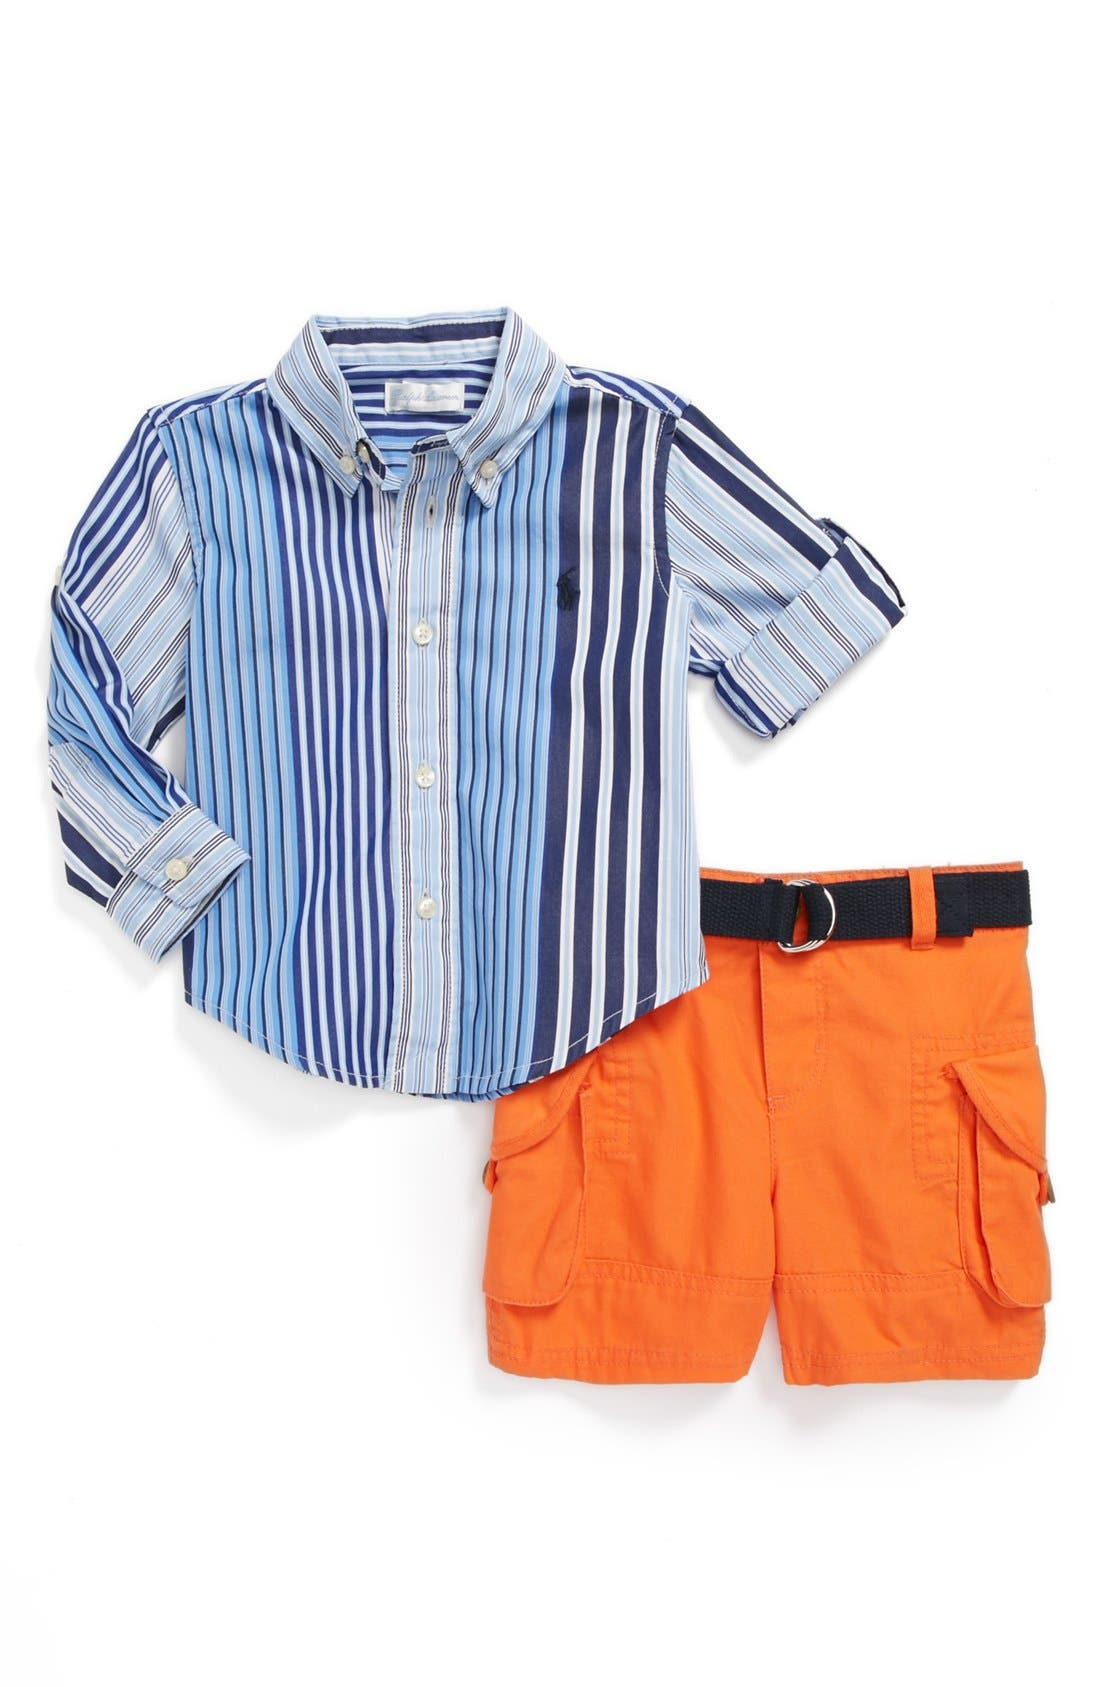 Main Image - Ralph Lauren Stripe Shirt & Cargo Shorts (Baby Boys)